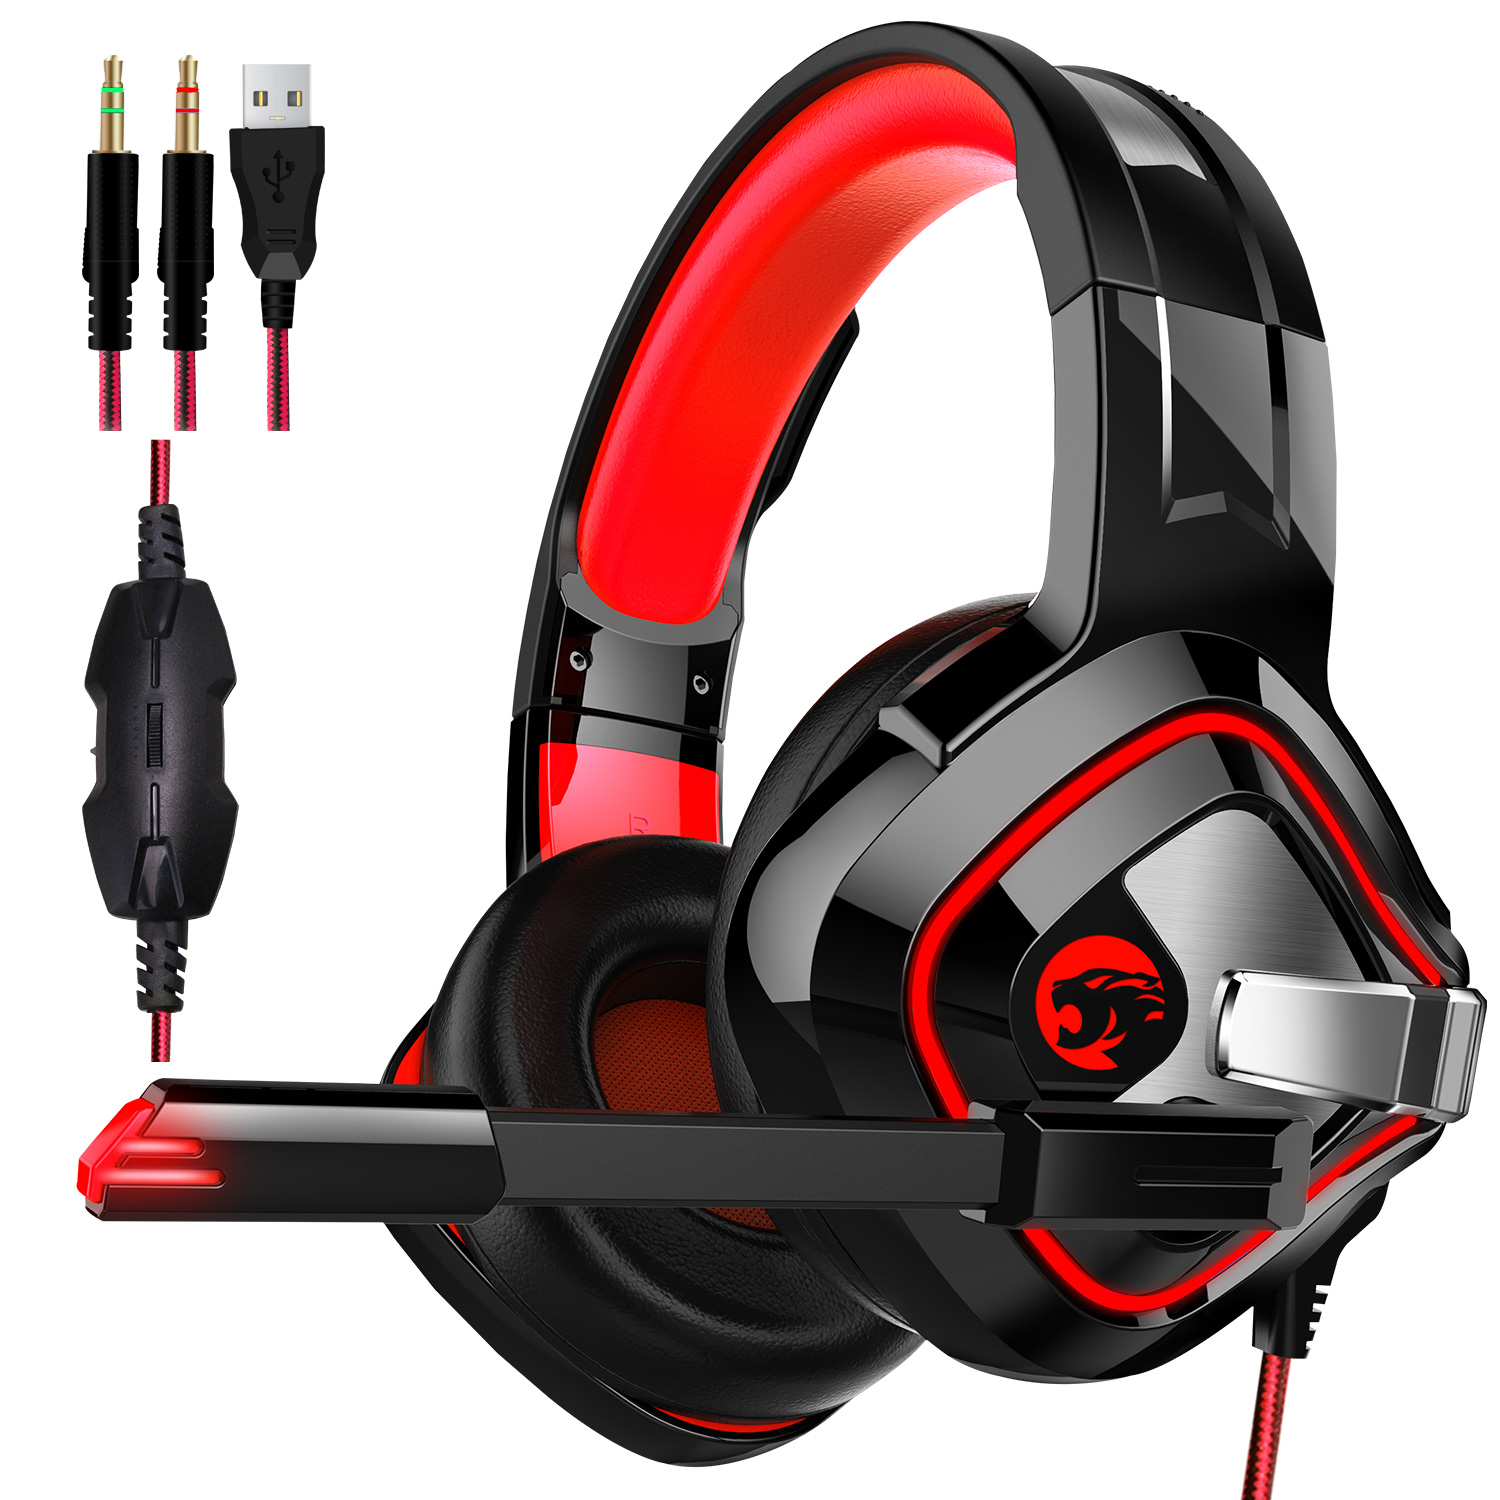 Gaming Headset PS4 K8 Stereo Xbox one Headset Wired PC Gaming Headphone with Noise Cancelling Mic,Over Ear Gaming Headphones for PC//MAC////PS4//New Xbox One//Laptop